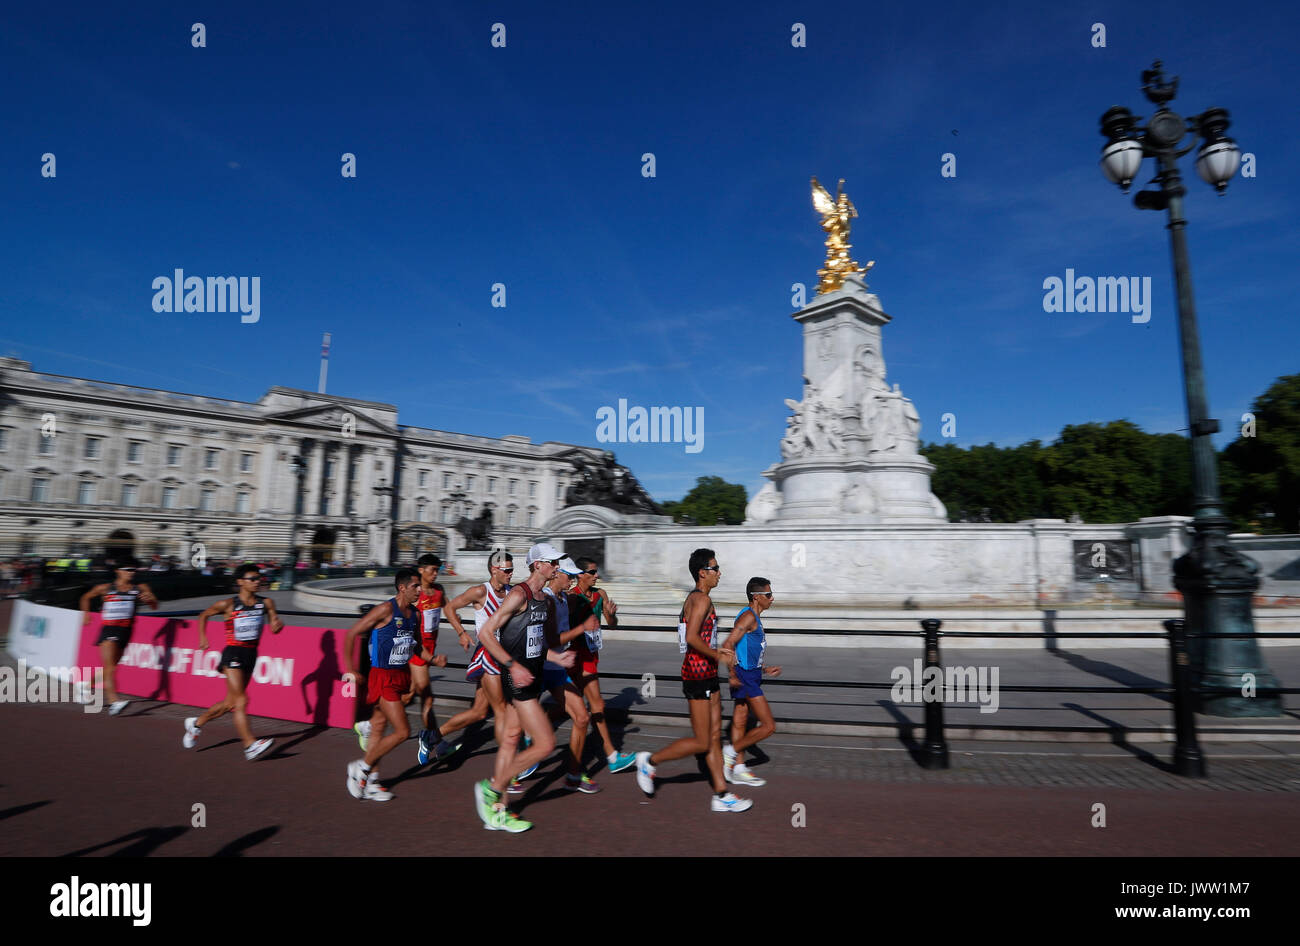 London, UK. 13th Aug, 2017. Athletes compete during the 50km race walk on Day 10 at the IAAF World Championships Stock Photo